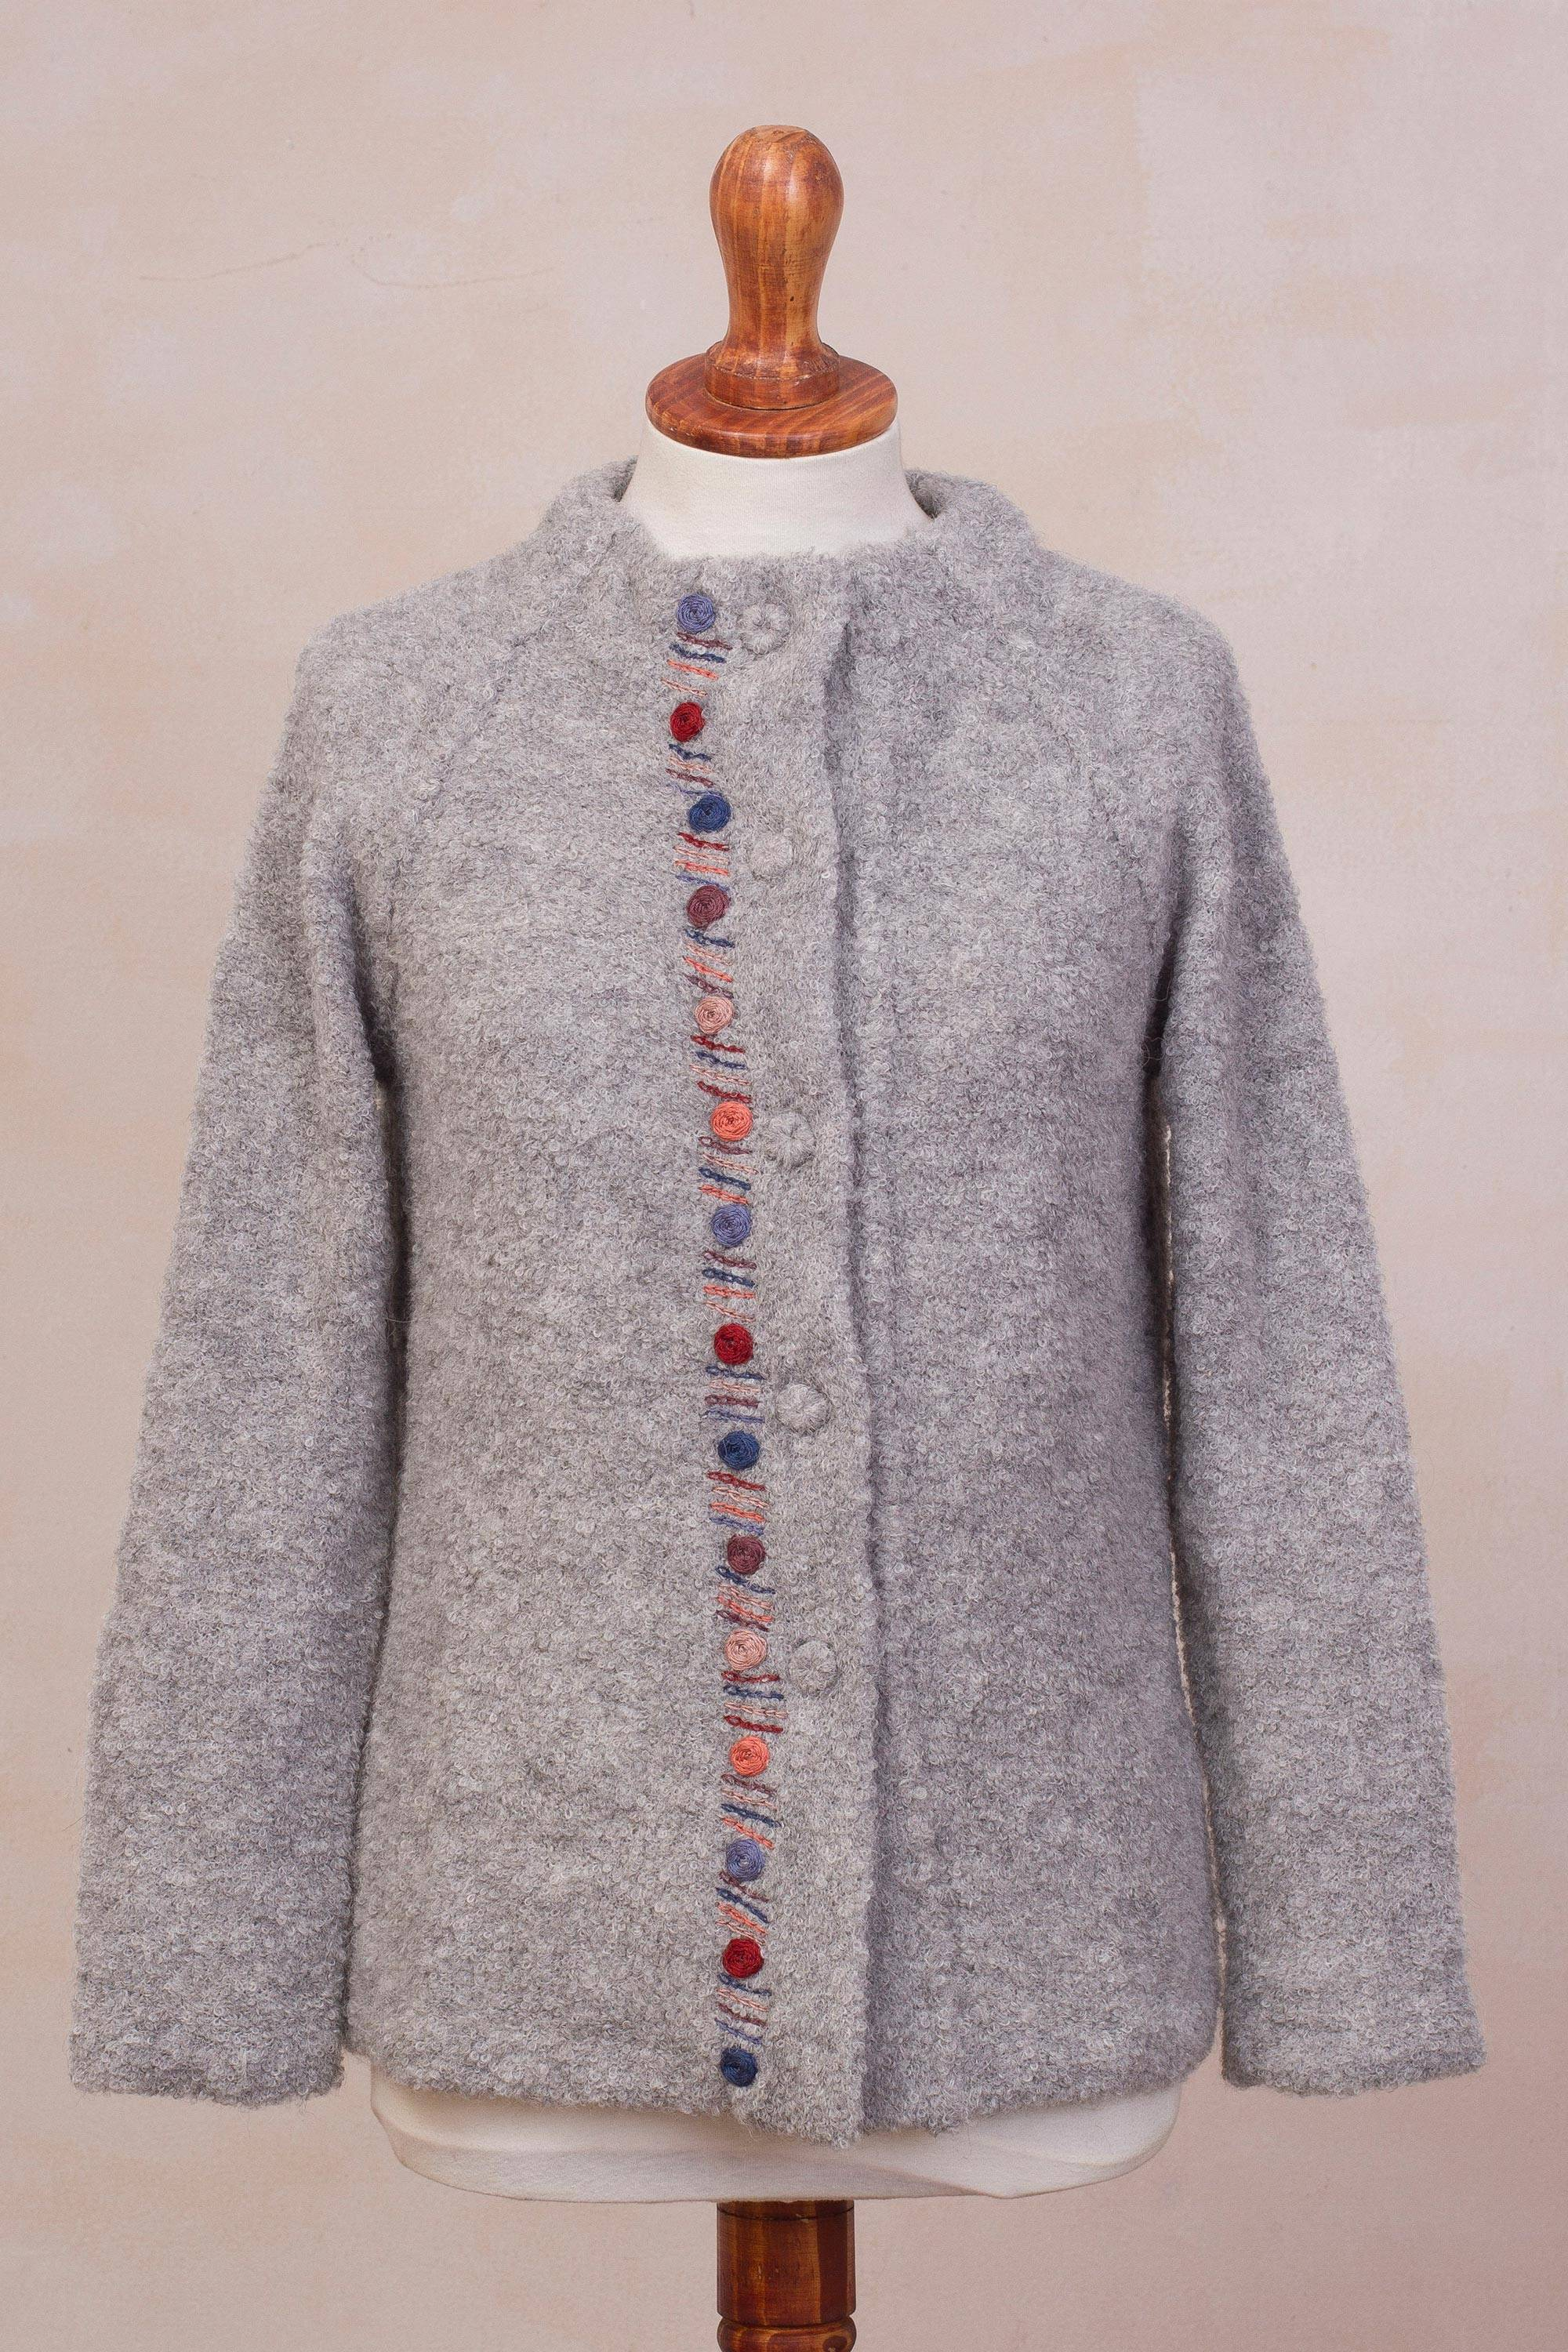 d539fa1dd Grey Alpaca Blend Sweater Jacket from Peru - Morning Muse in Grey ...